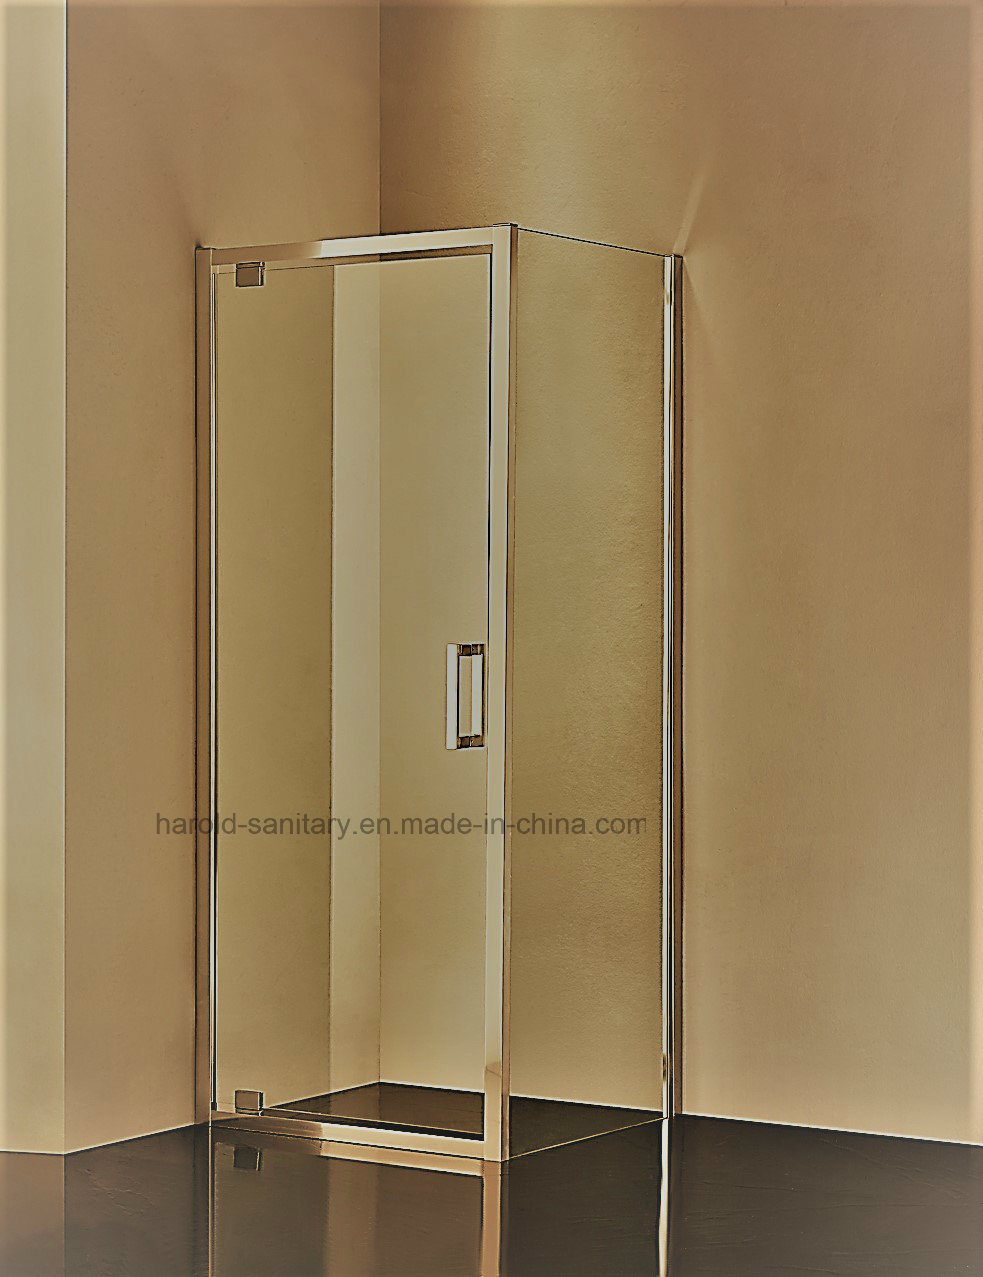 HR-09 Framed Pivot Hinge Shower Enclosure